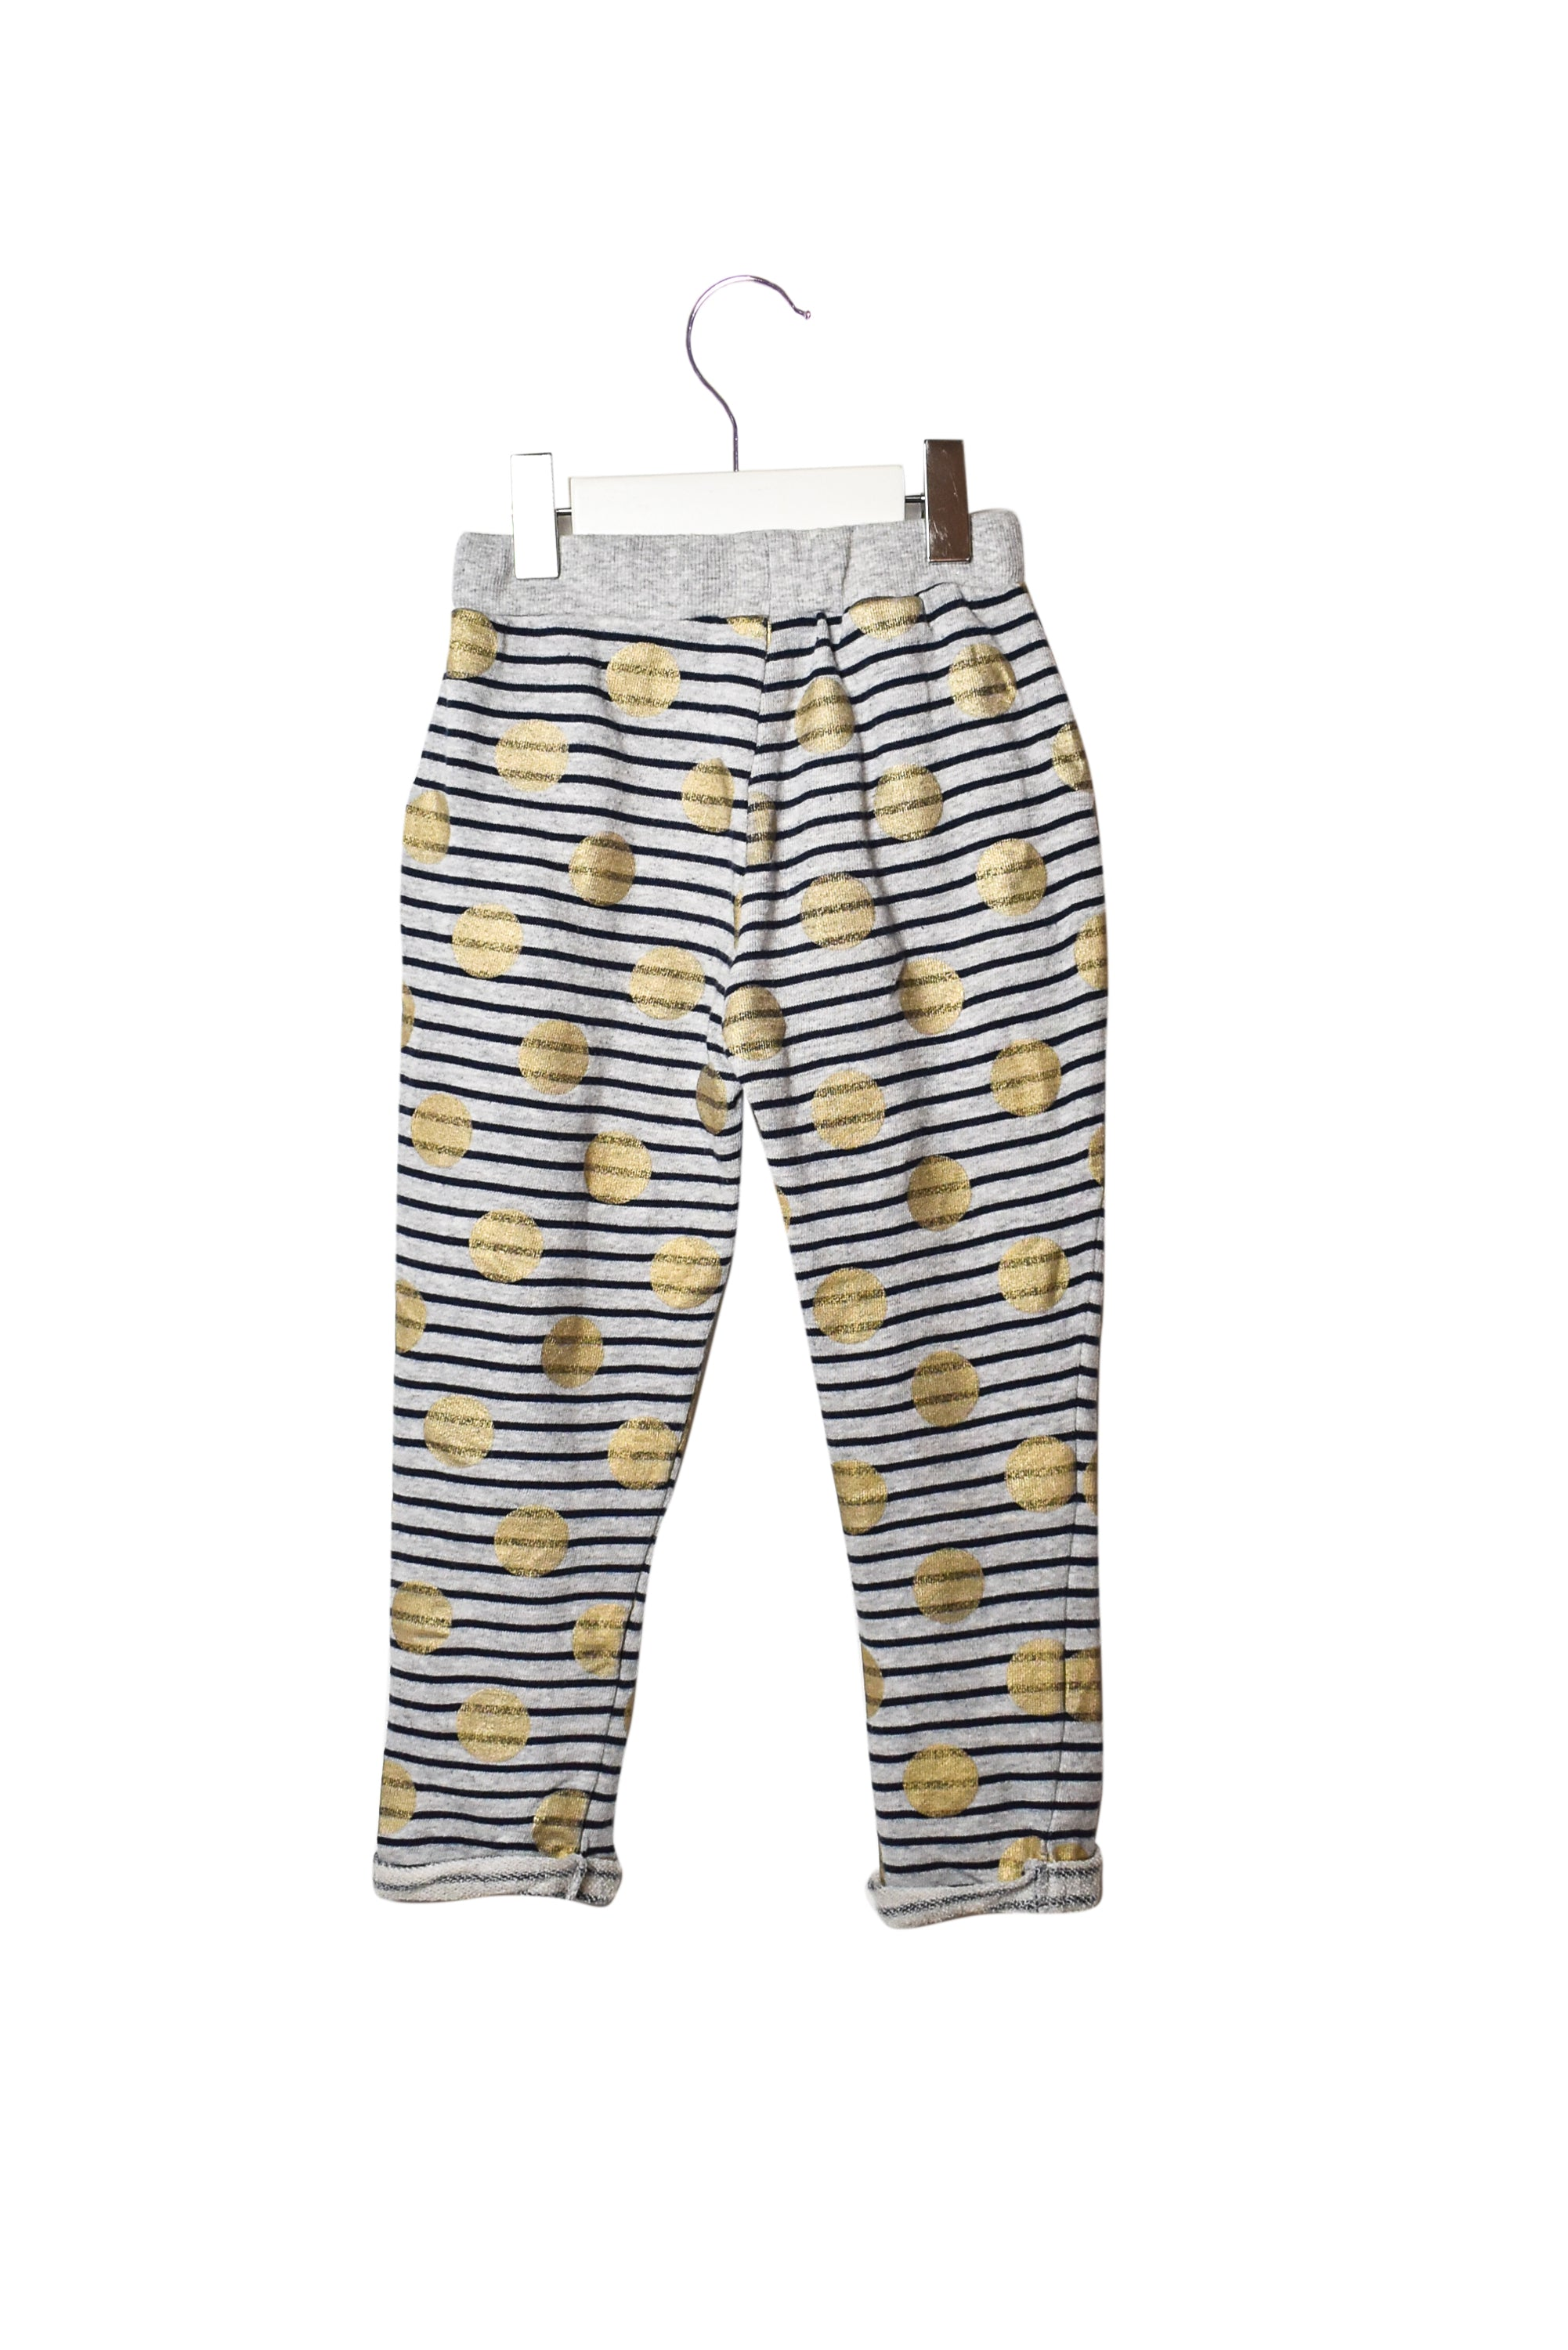 10008424 Seed Kids~Pants 2-3T at Retykle